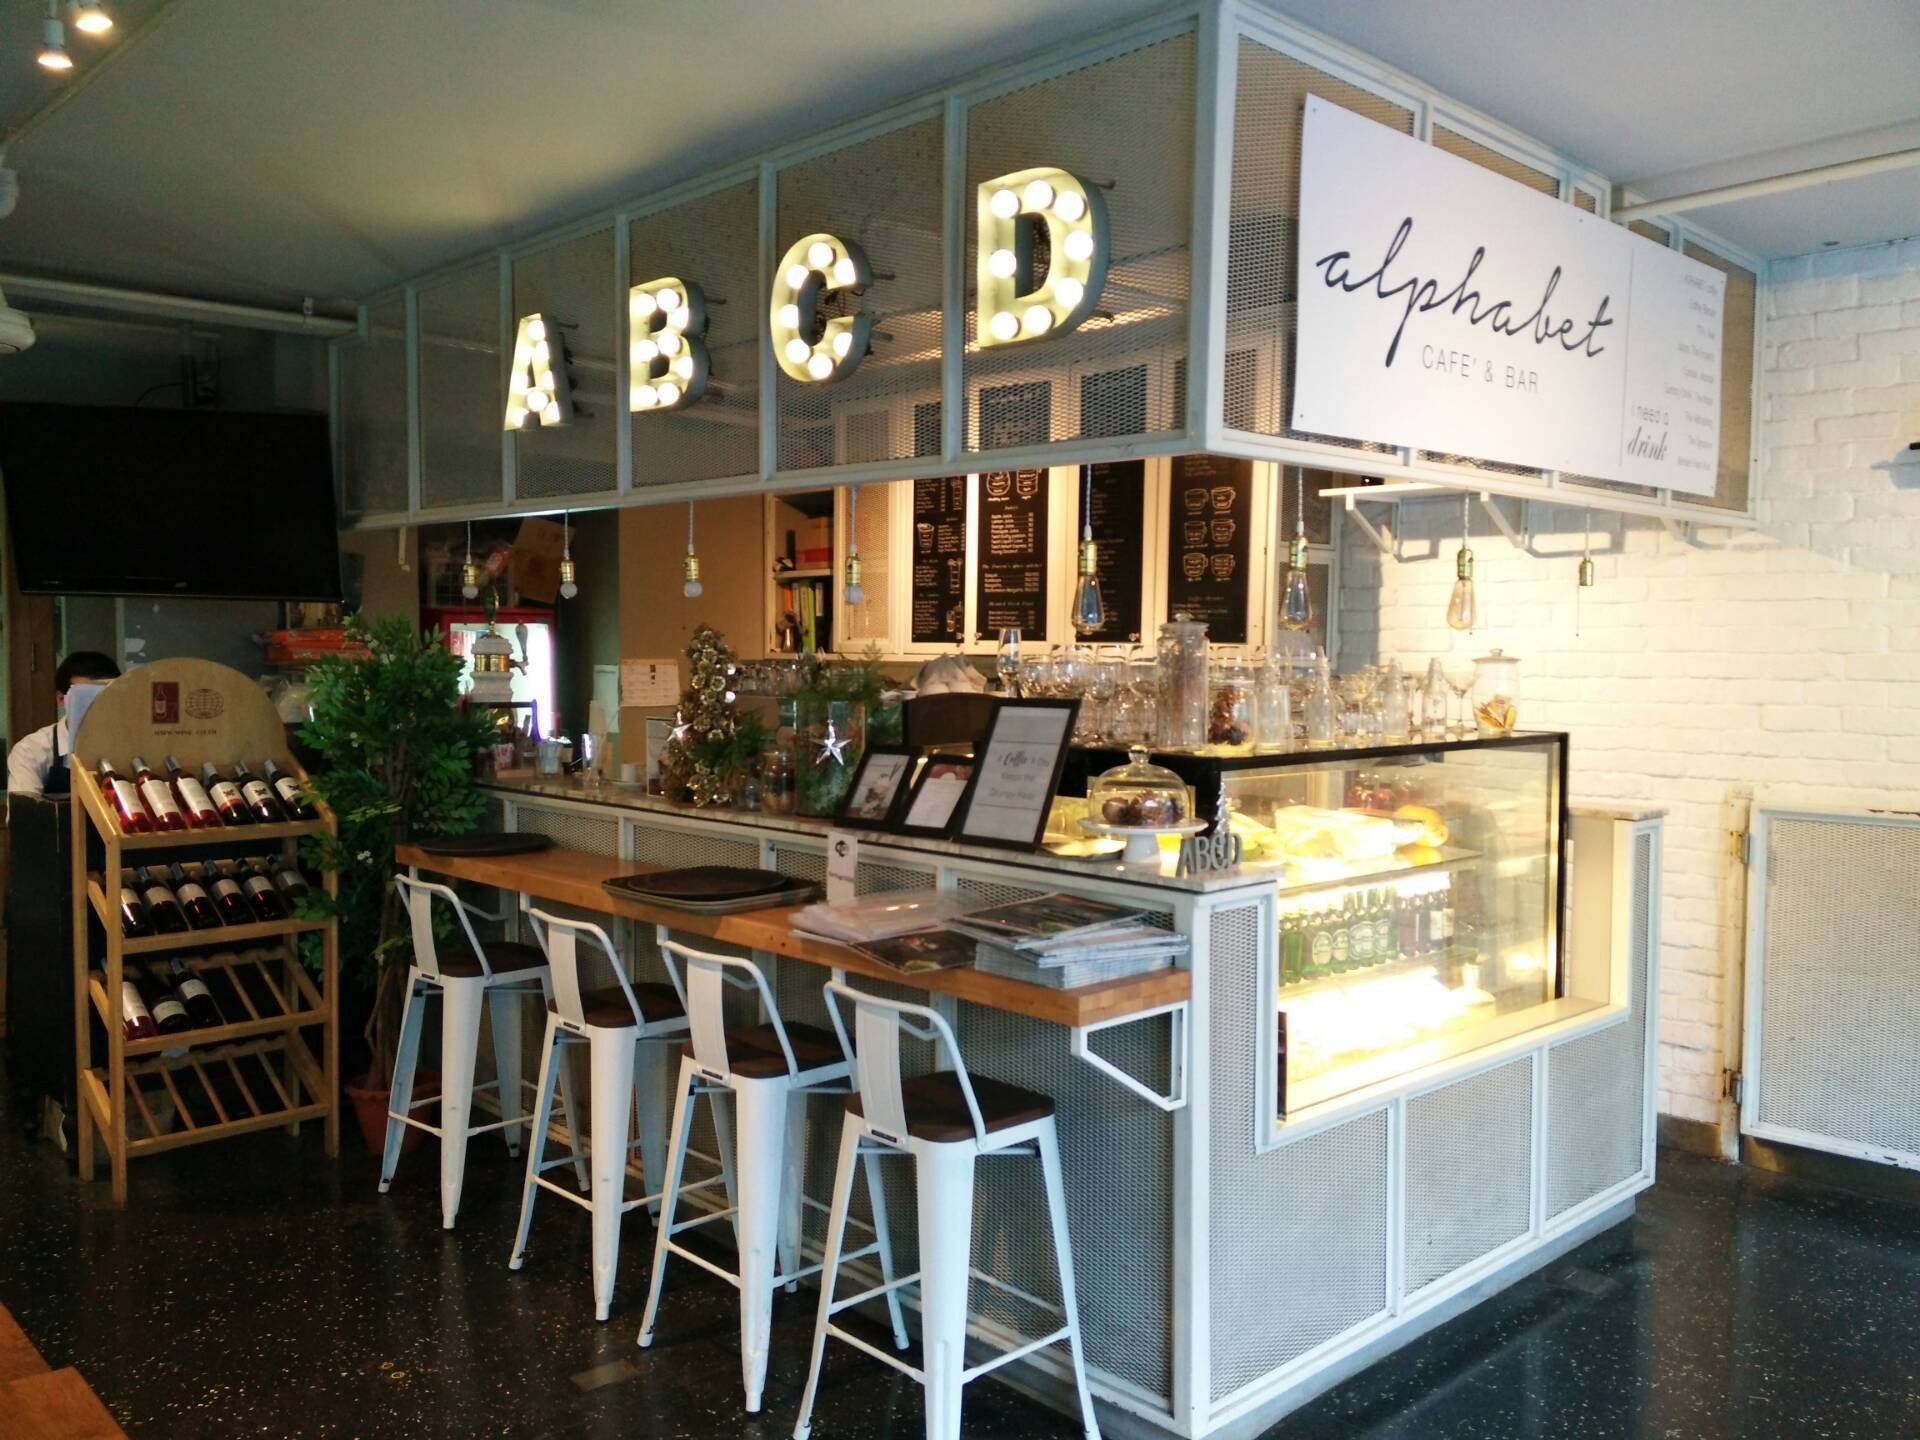 Alphabet Cafe & Bar